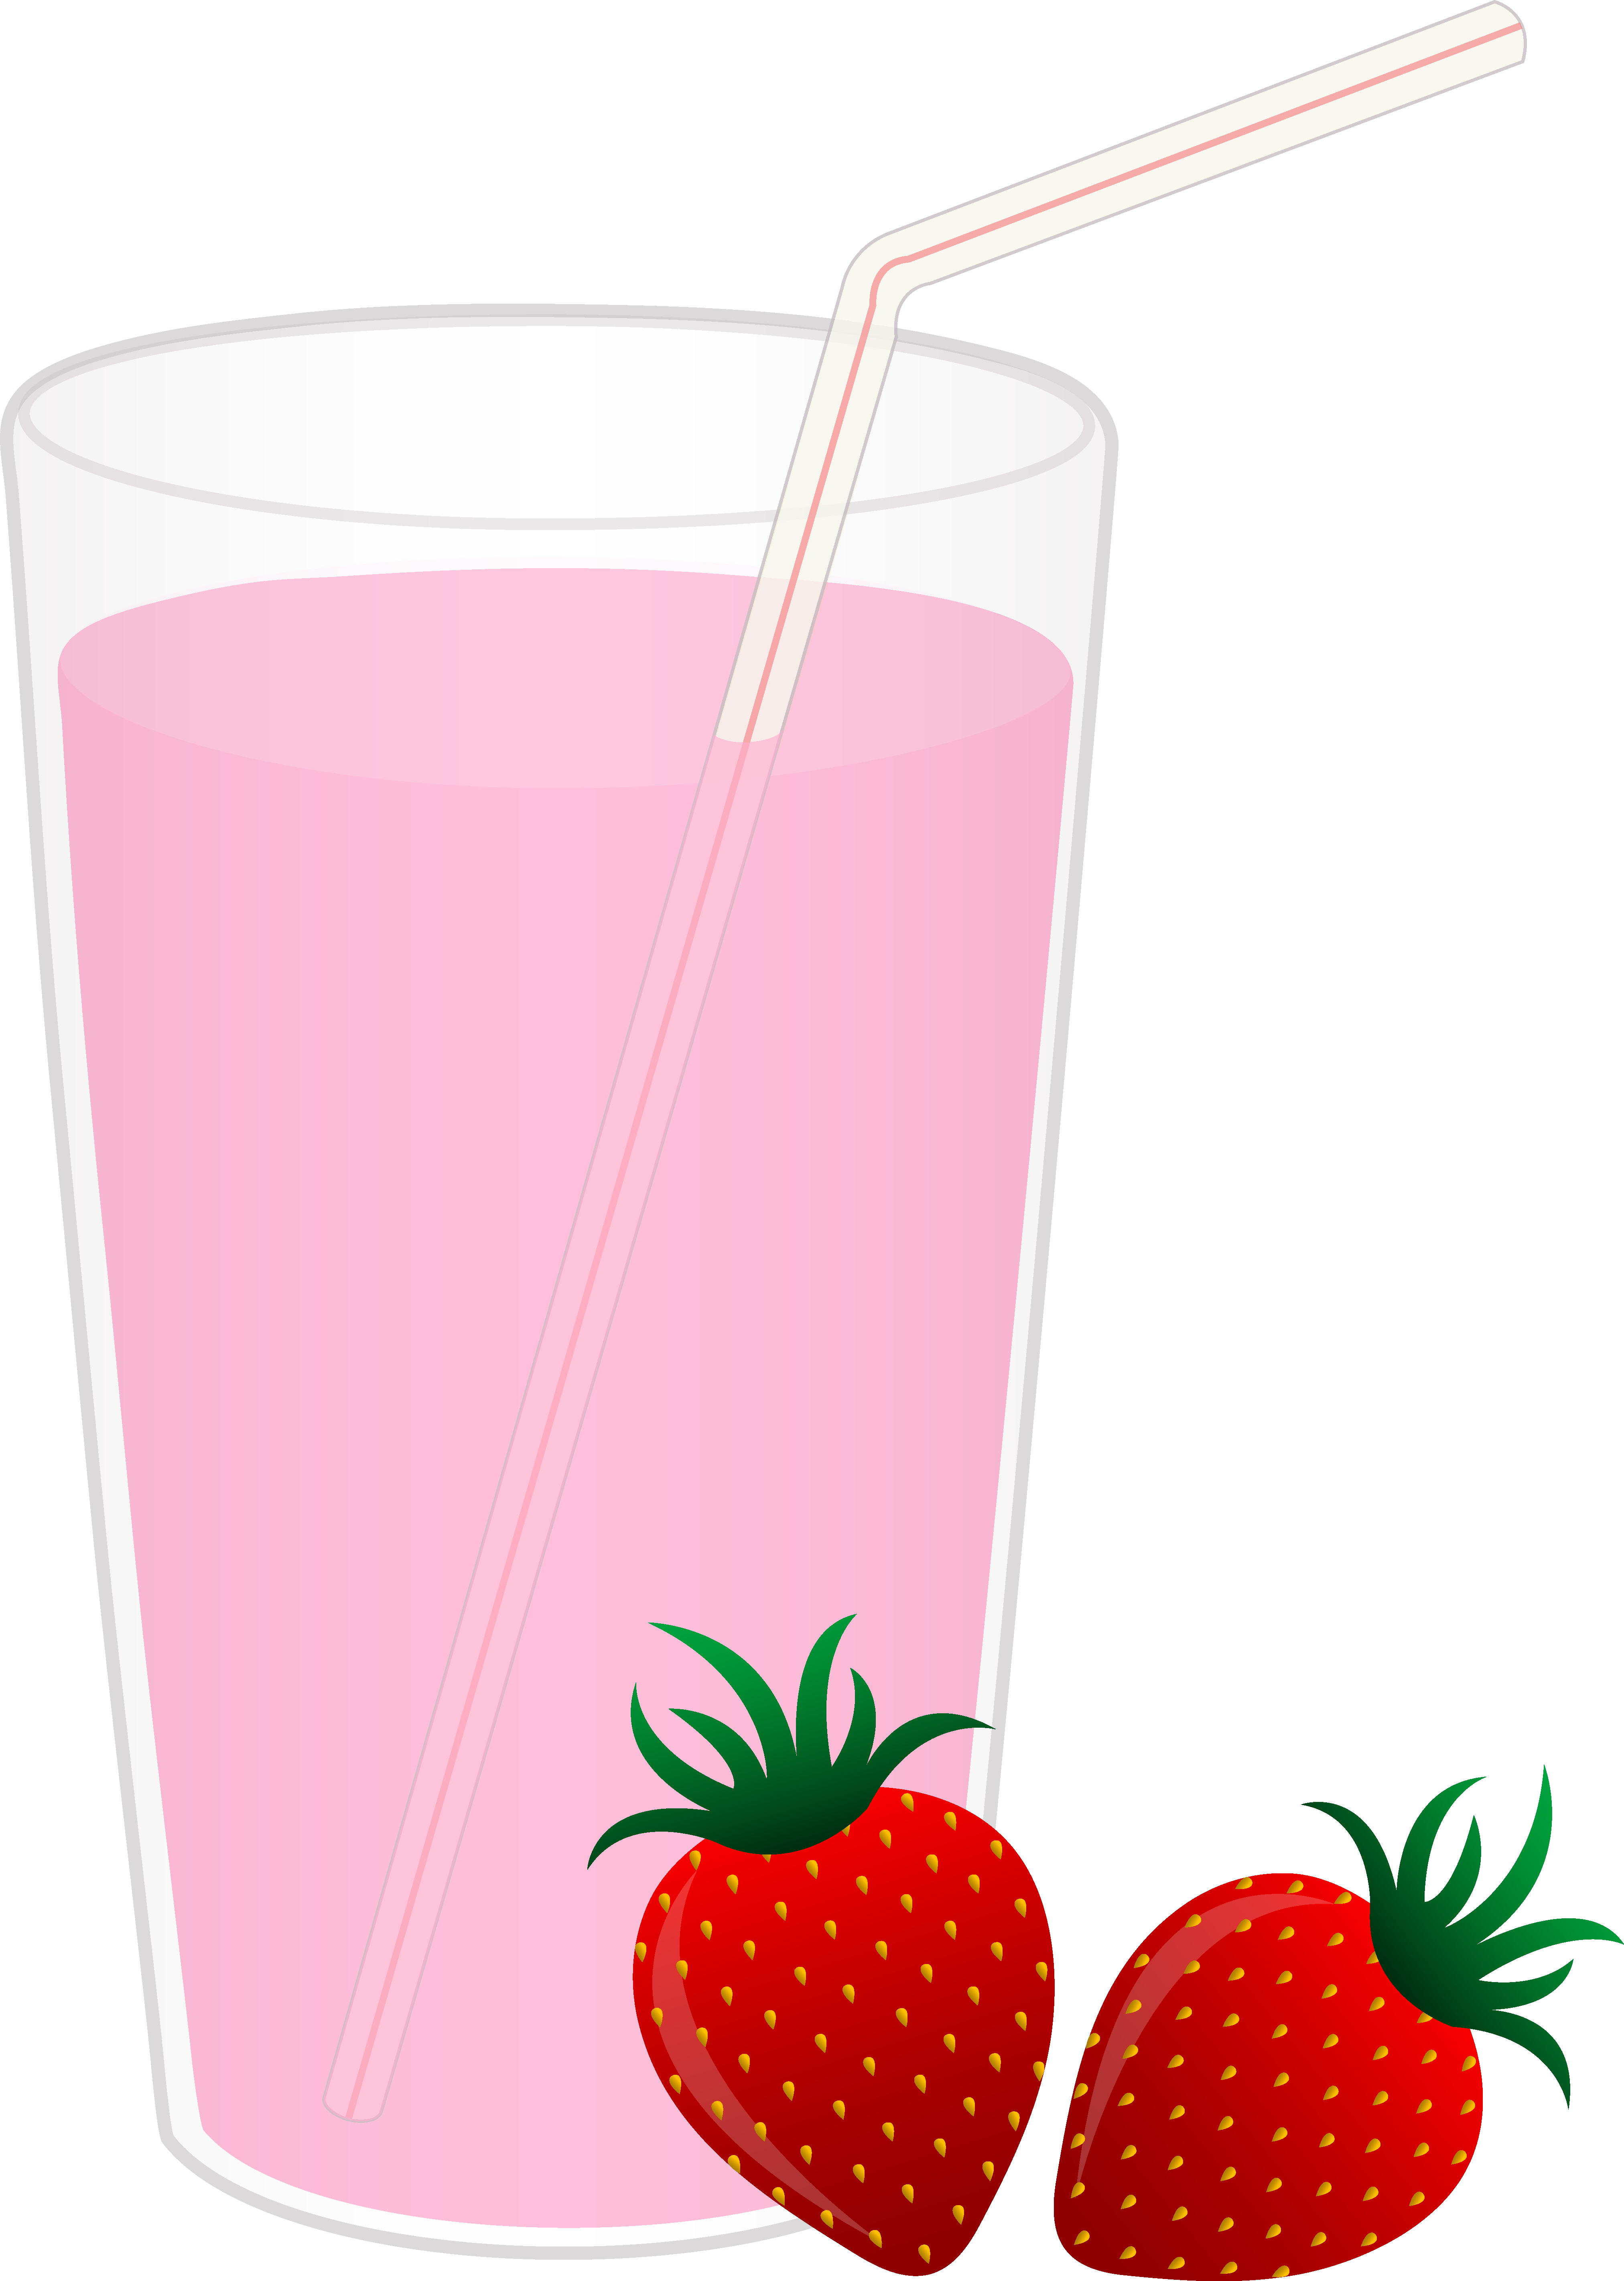 Strawberry clipart pink strawberry. Glass of milk free